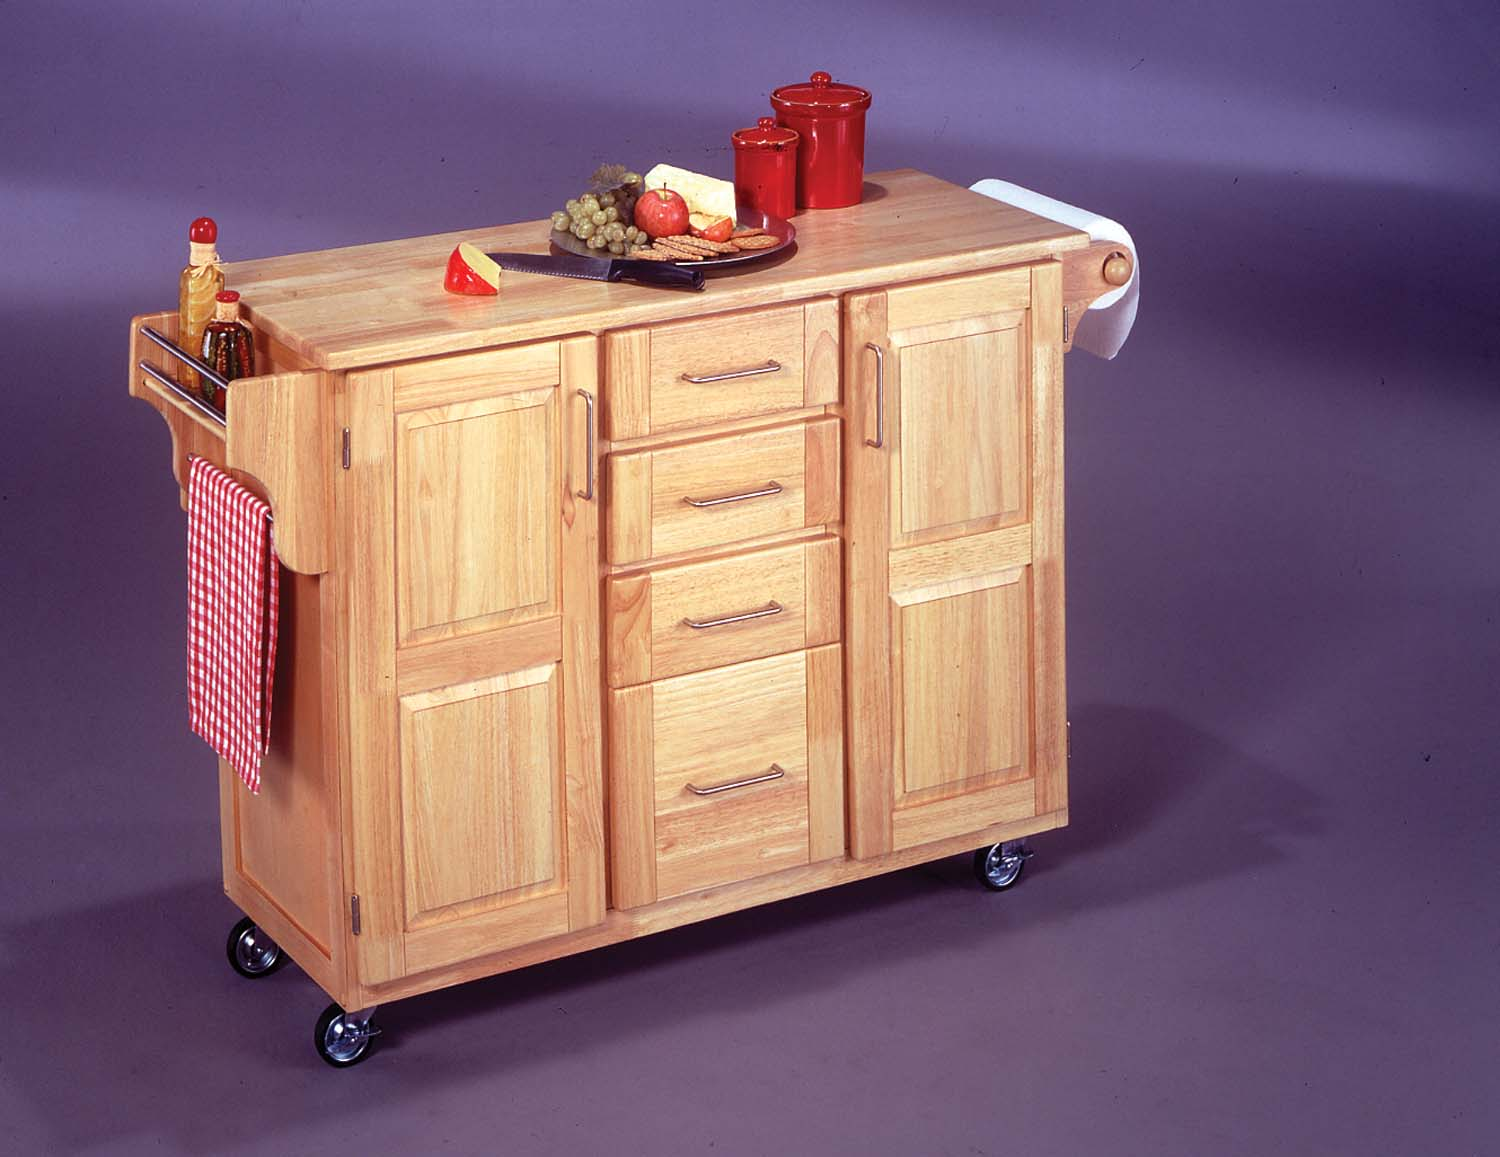 Drop leaf lets you expand your kitchen island or kitchen cart